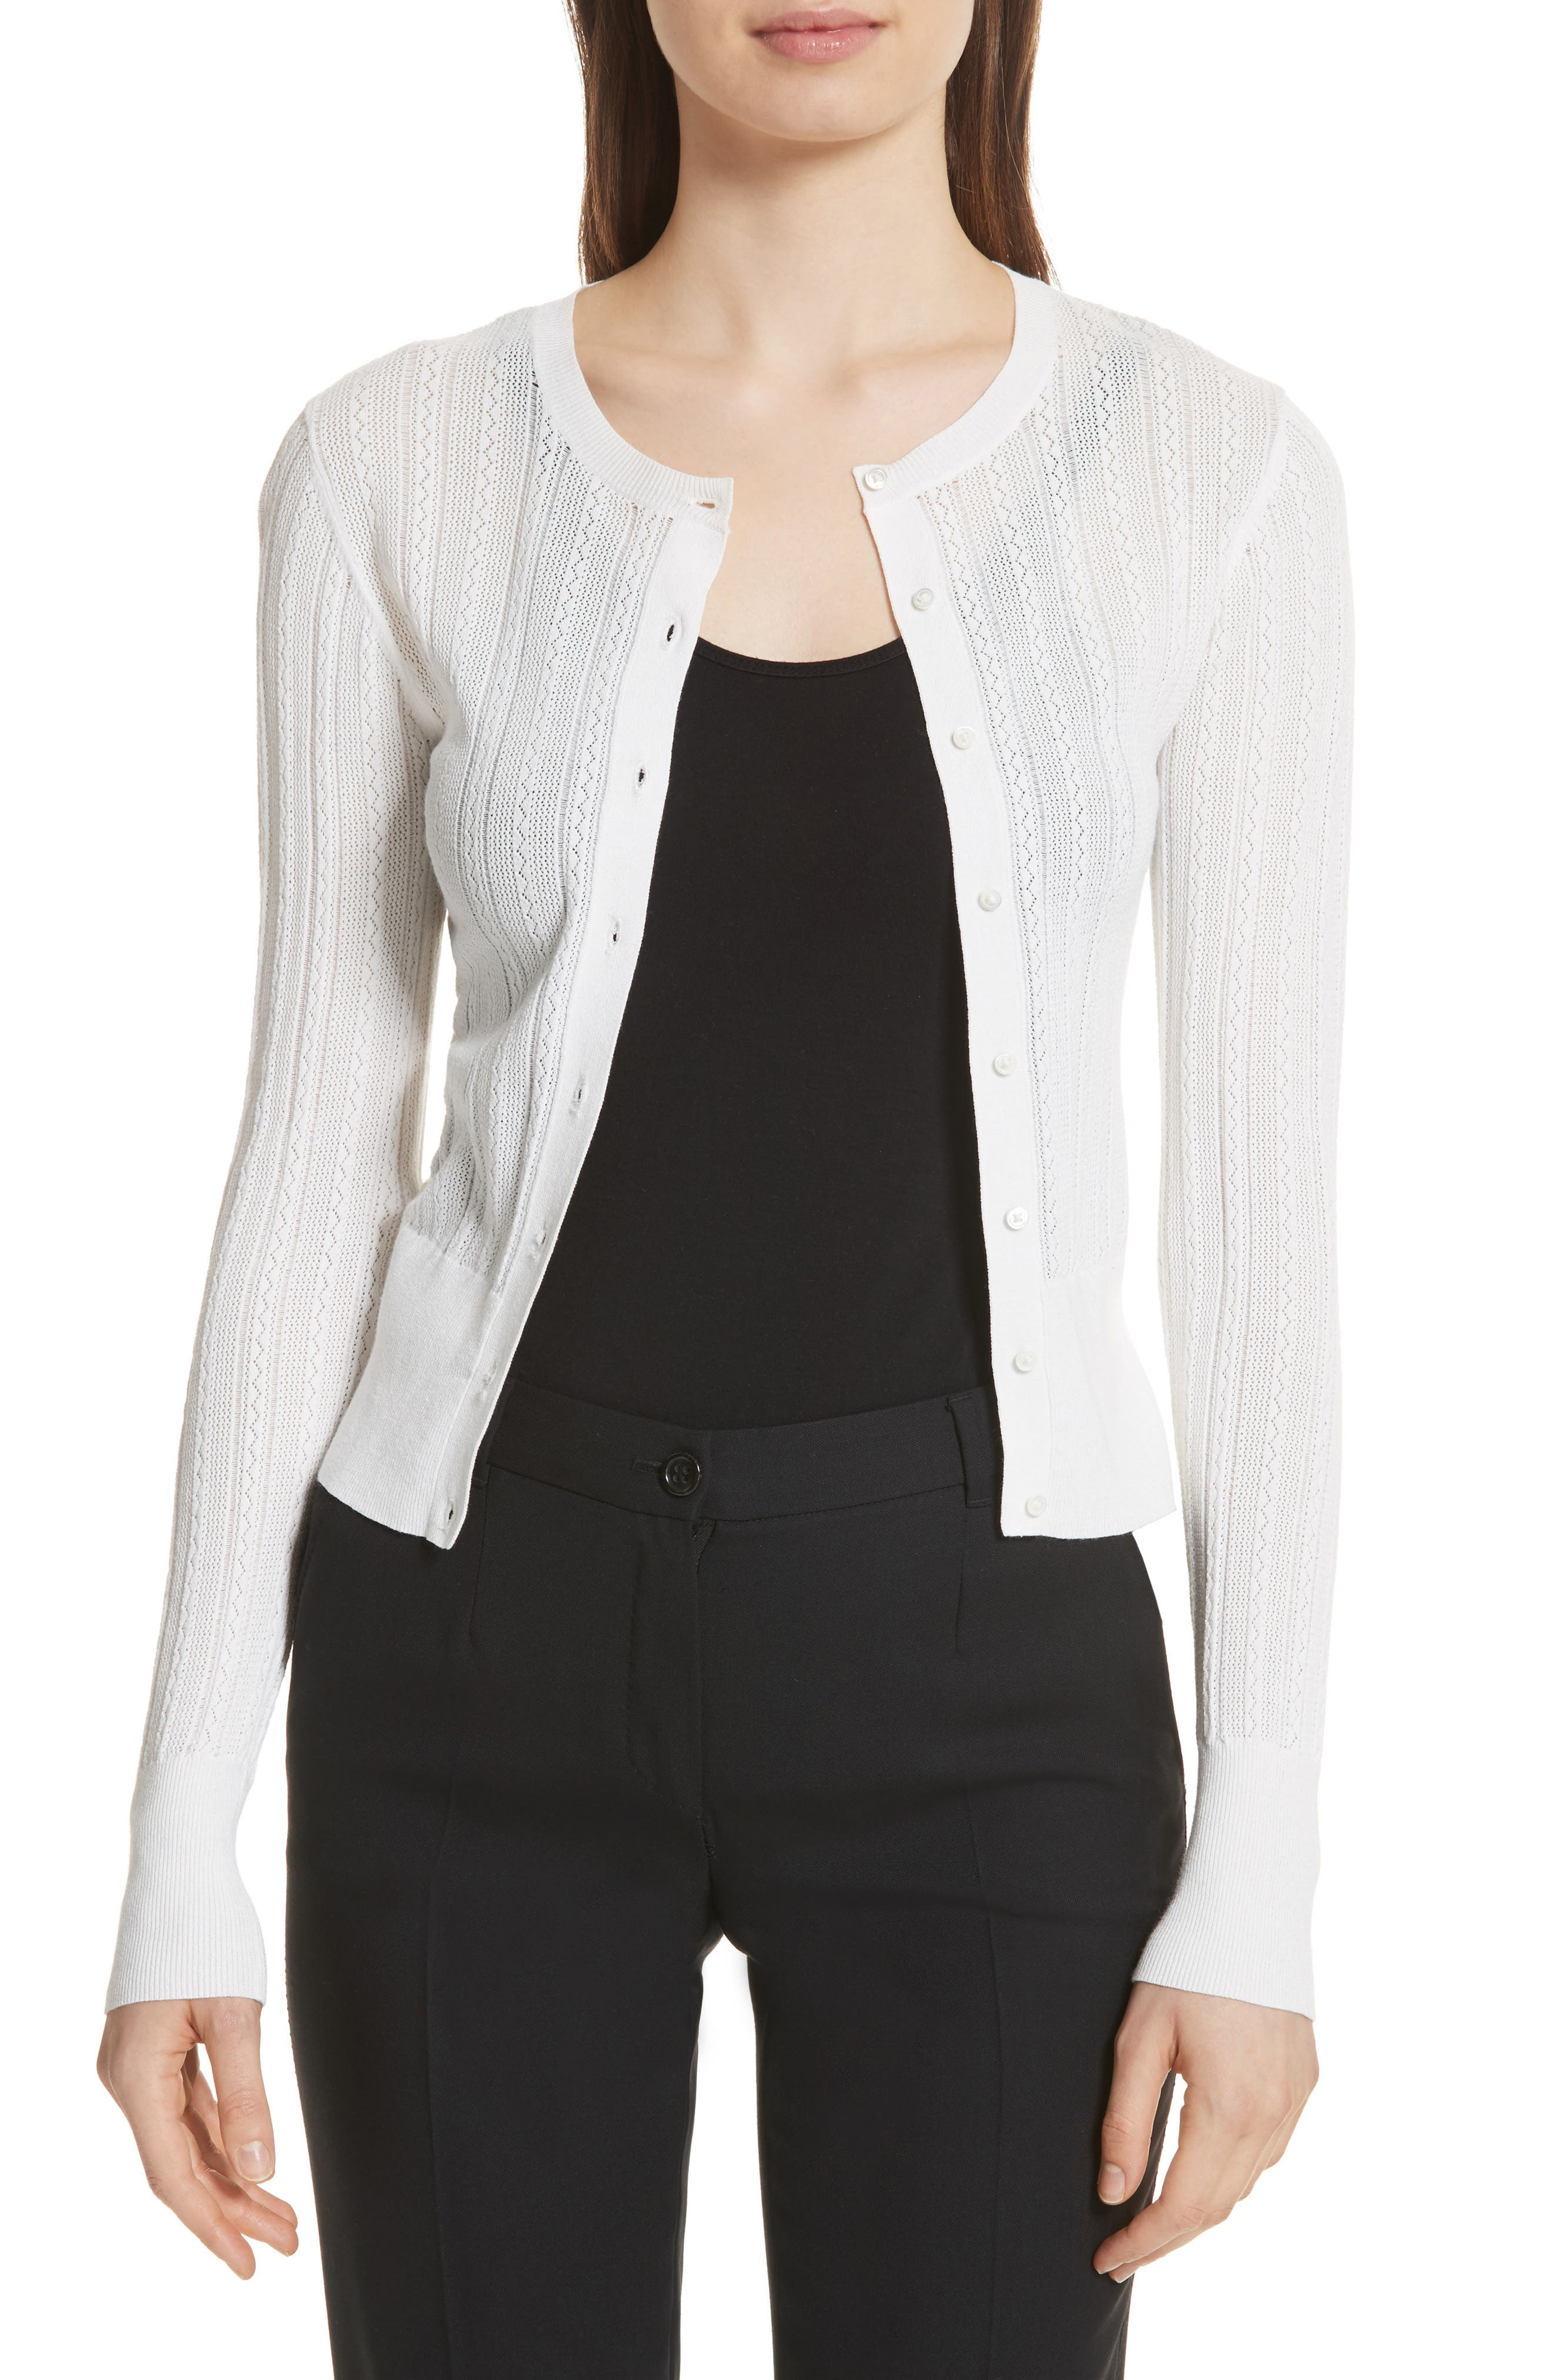 Prosecco Lace Knit Cardigan,                         Main,                         color, Eggshell